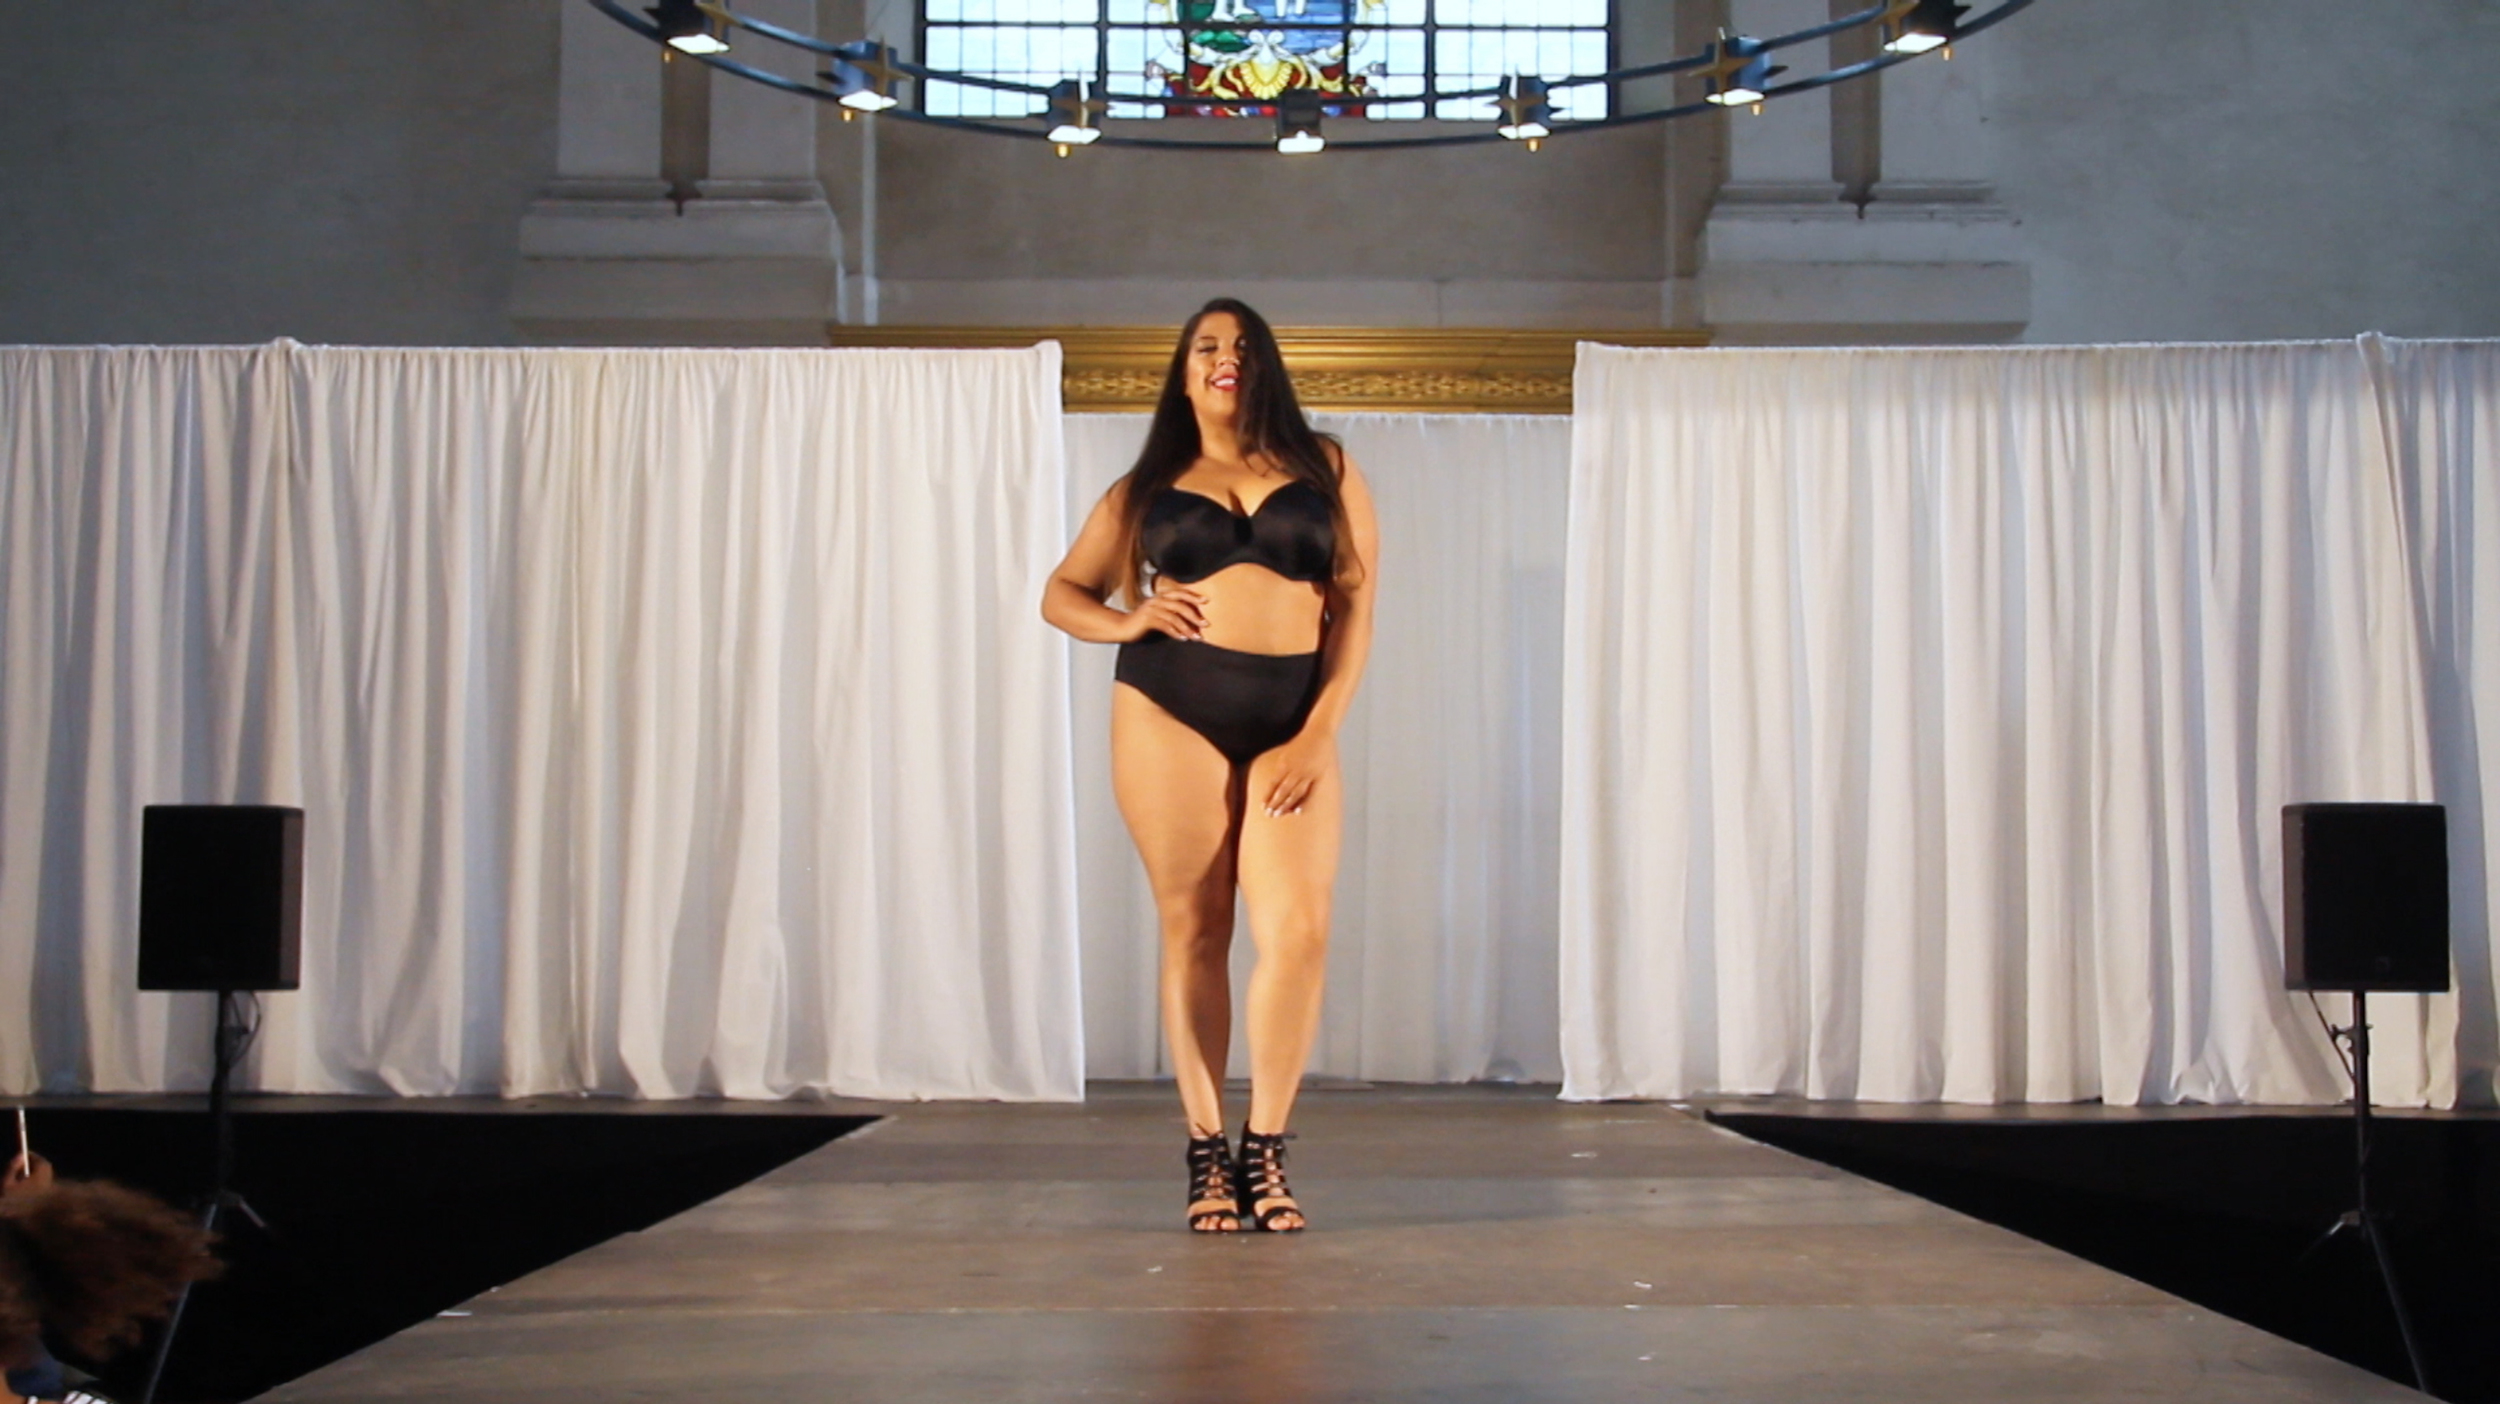 Measure Up - Jerri Hoath on the catwalk at Curvy Convention - May 2016